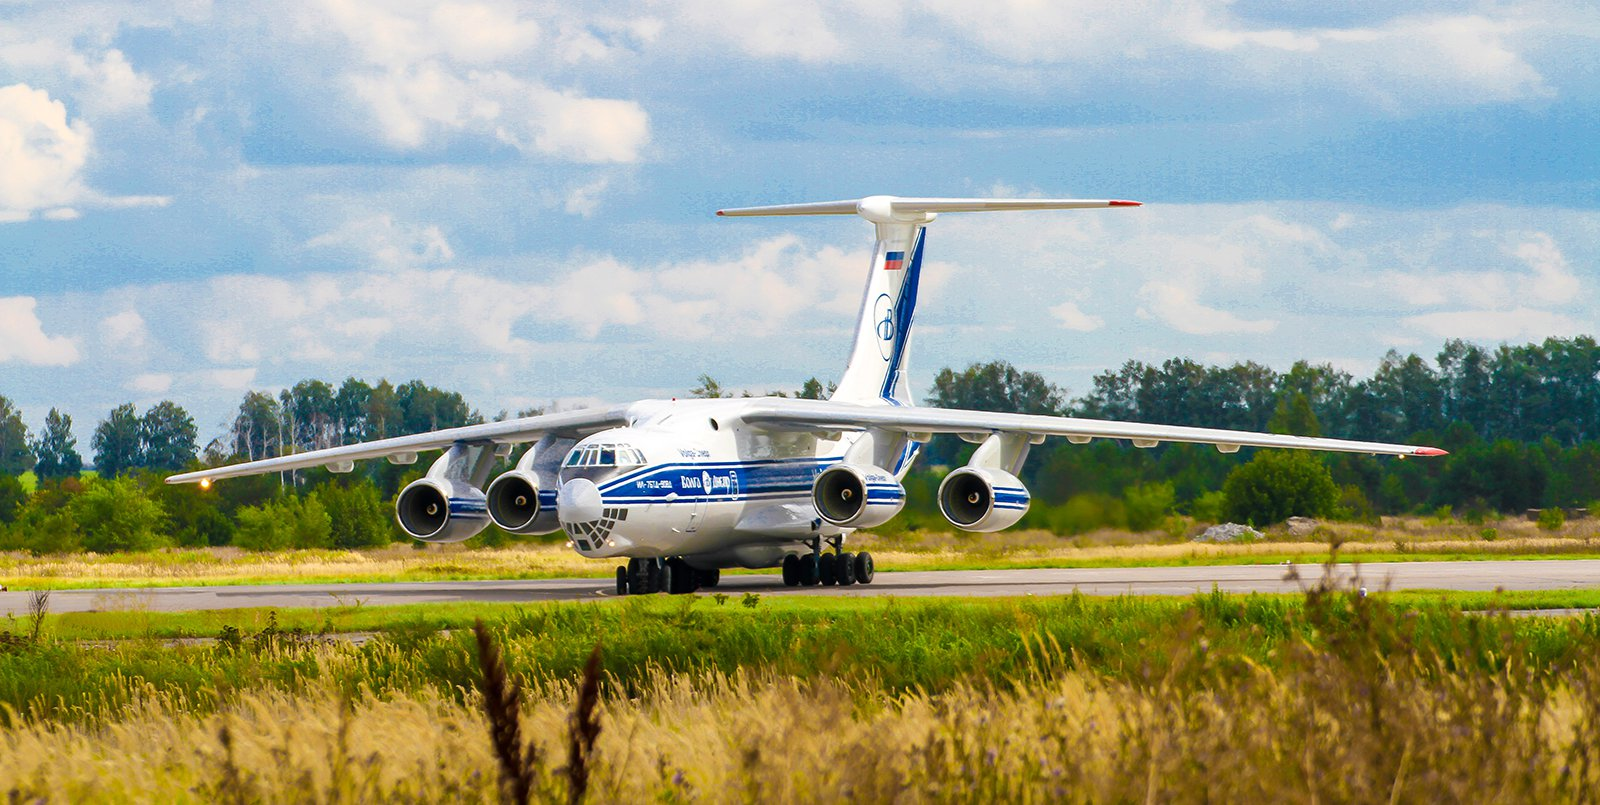 IL-76TD-90VD Aircraft with PS-90А-76 Engines